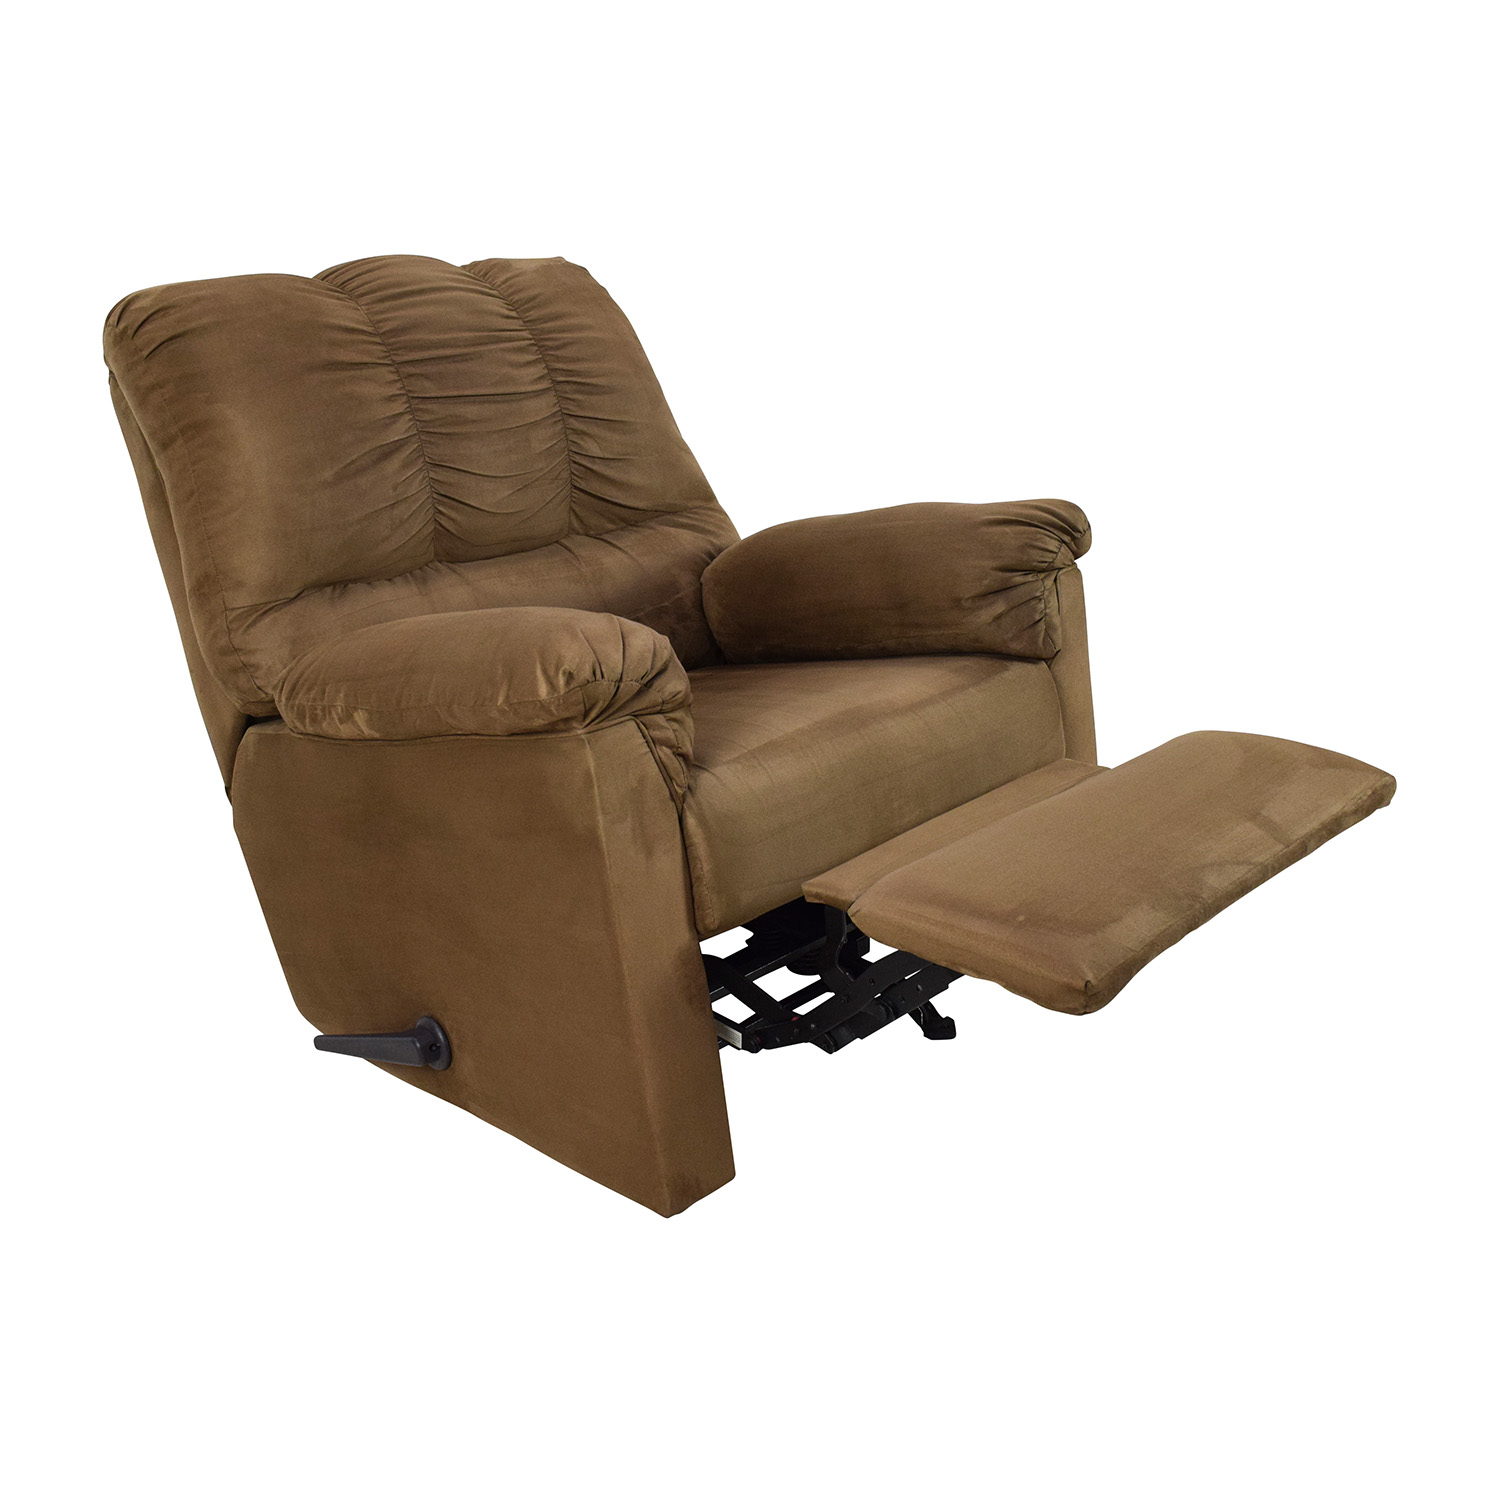 Ashley Furniture Recliner Chairs 73 Off Ashley Furniture Ashley Furniture Darcy Rocker Recliner Chairs